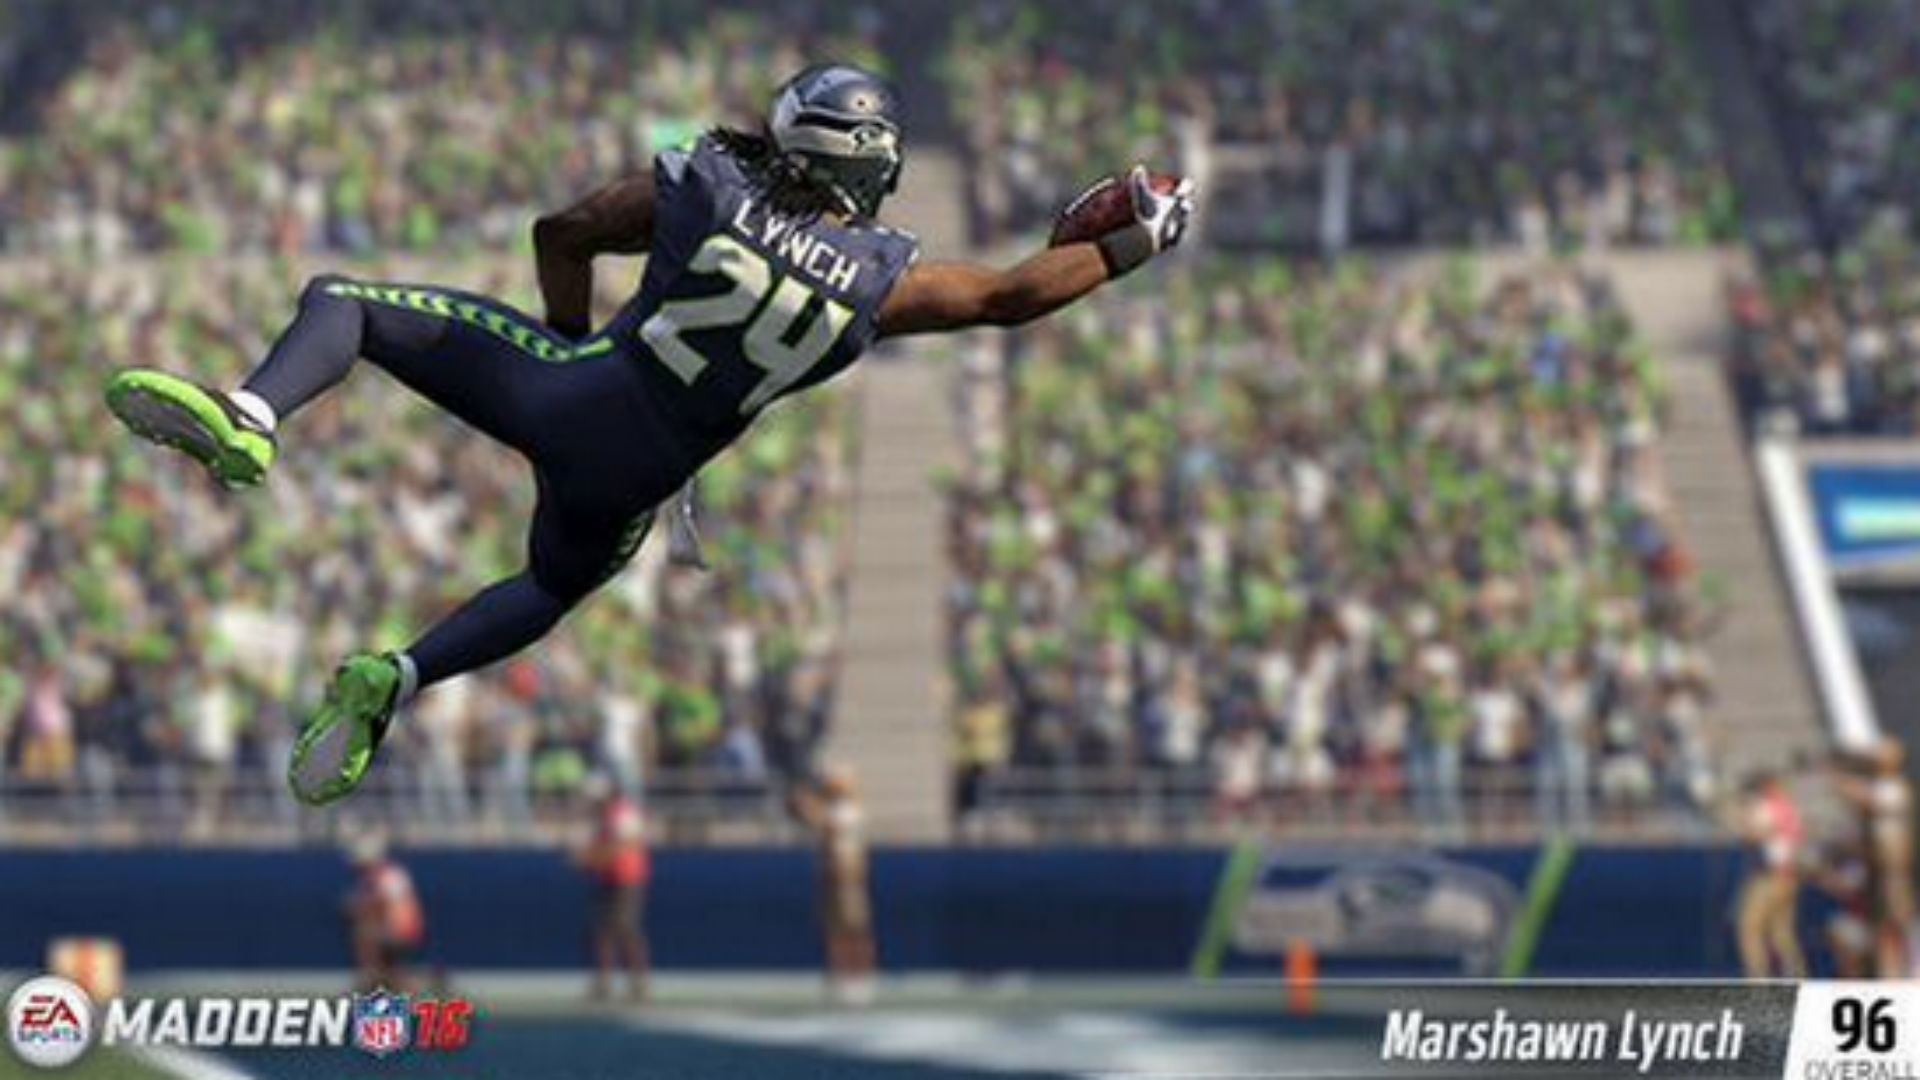 Marshawn-Lynch-Seahawks-Madden-Polygon-FTR.jpg